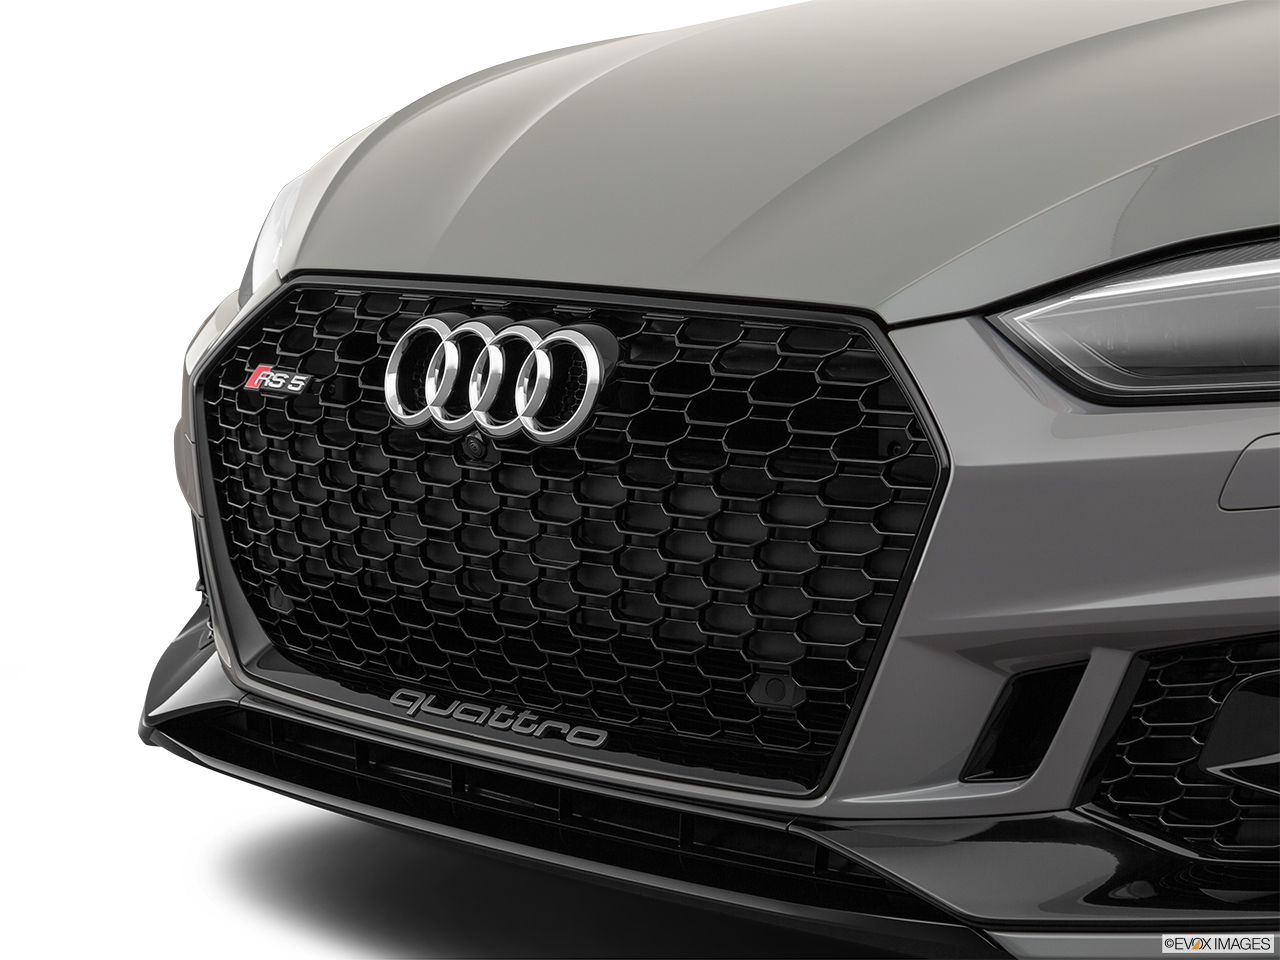 2019 Audi RS 5 Sportback 2.9 TFSI Close up of Grill.